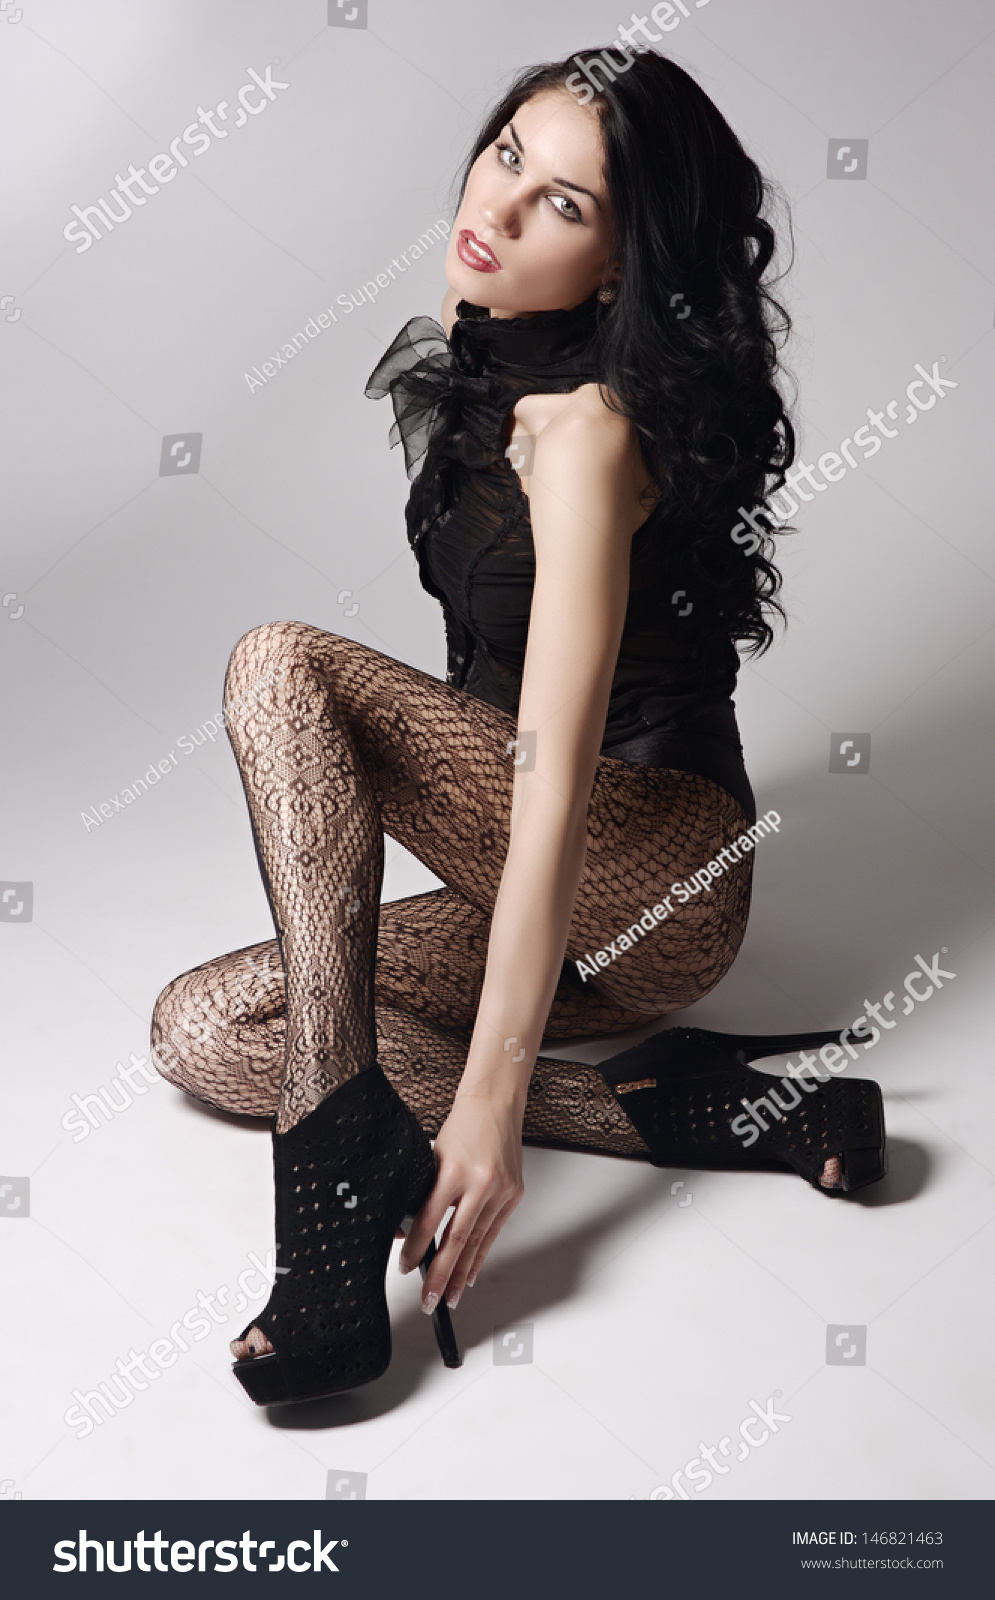 beautiful young sexy girl stockings poses stock photo (download now